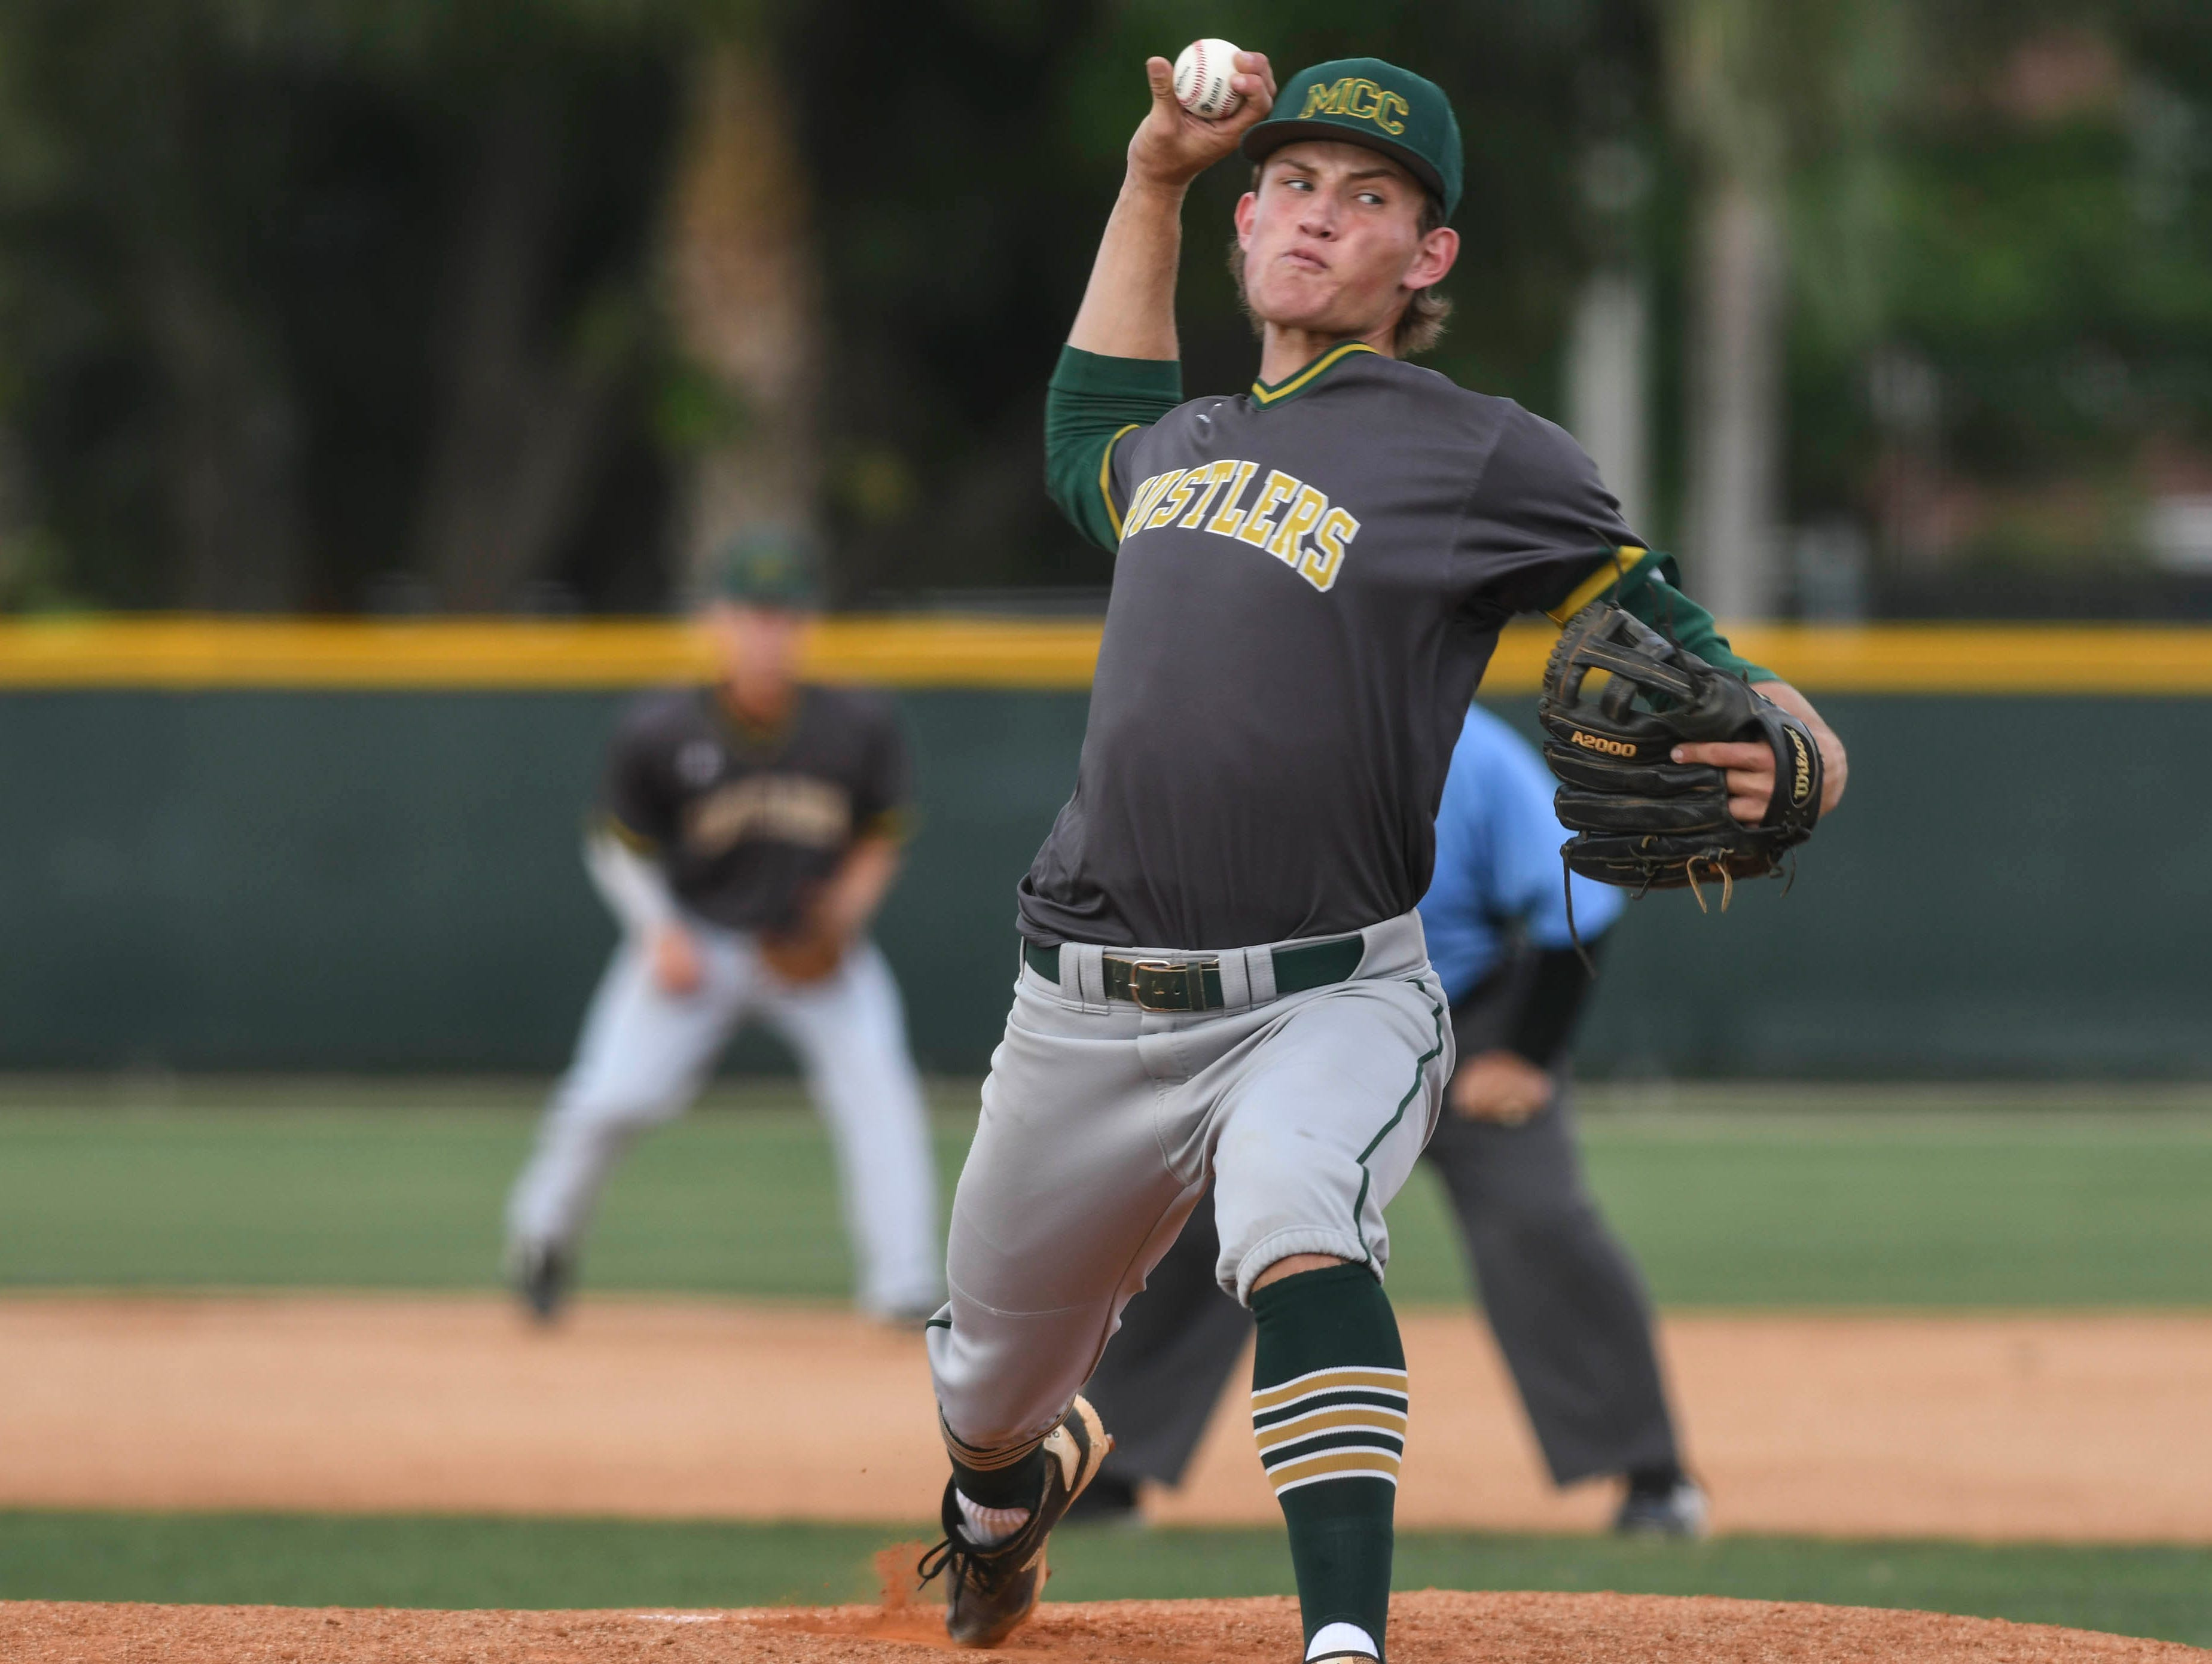 Nick Durgin pitches for Melbourne Central Catholic during Wednesday's game against Melbourne.